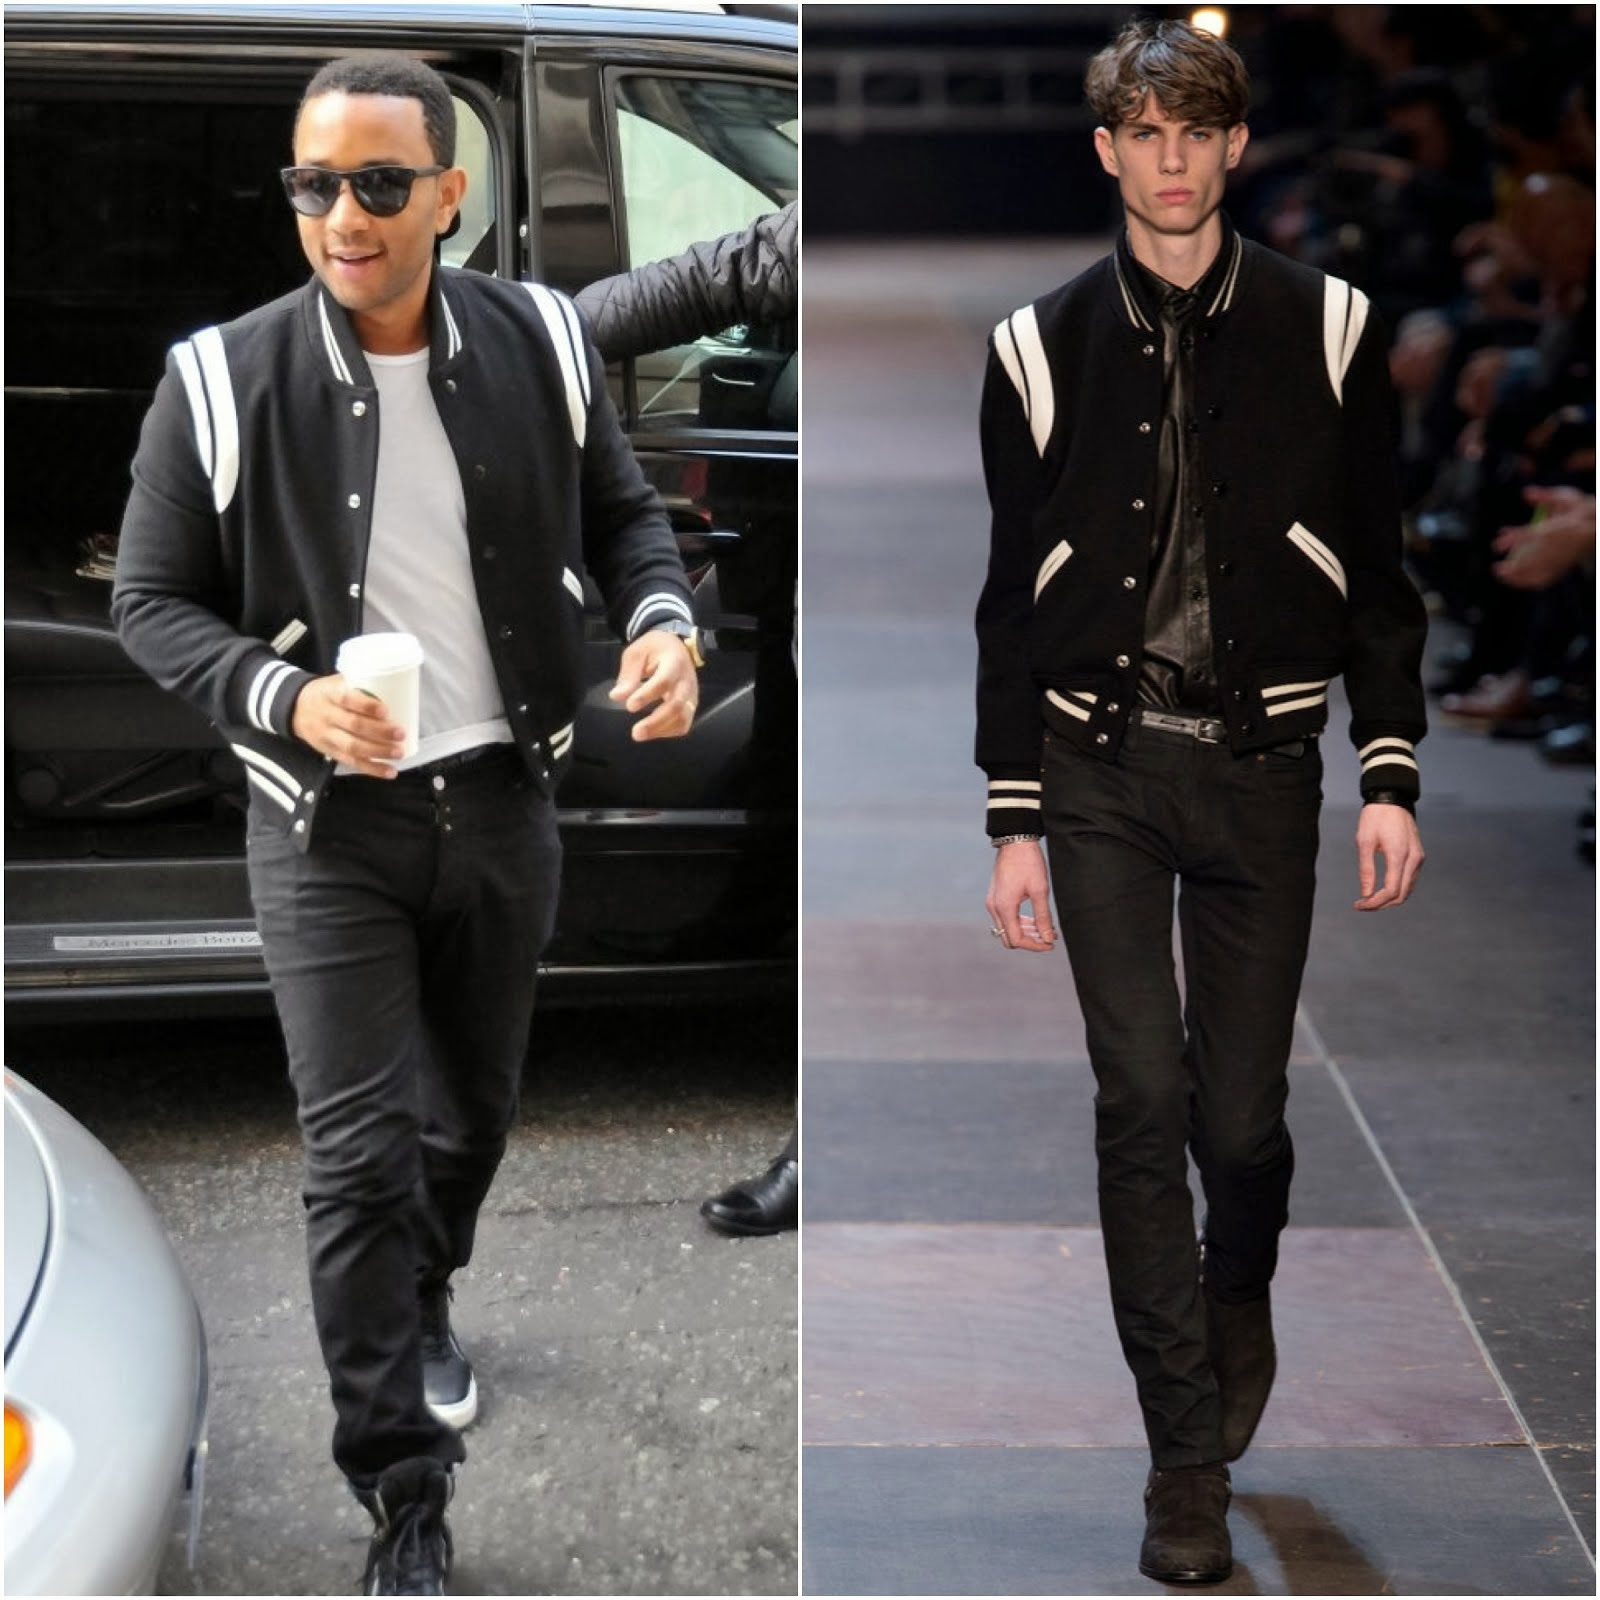 John Legend in Saint Laurent by Hedi Slimane varsity jacket - BBC Radio 2 Appearance | 00O00 Menswear Blog / 00000 Blog ooooo blog London